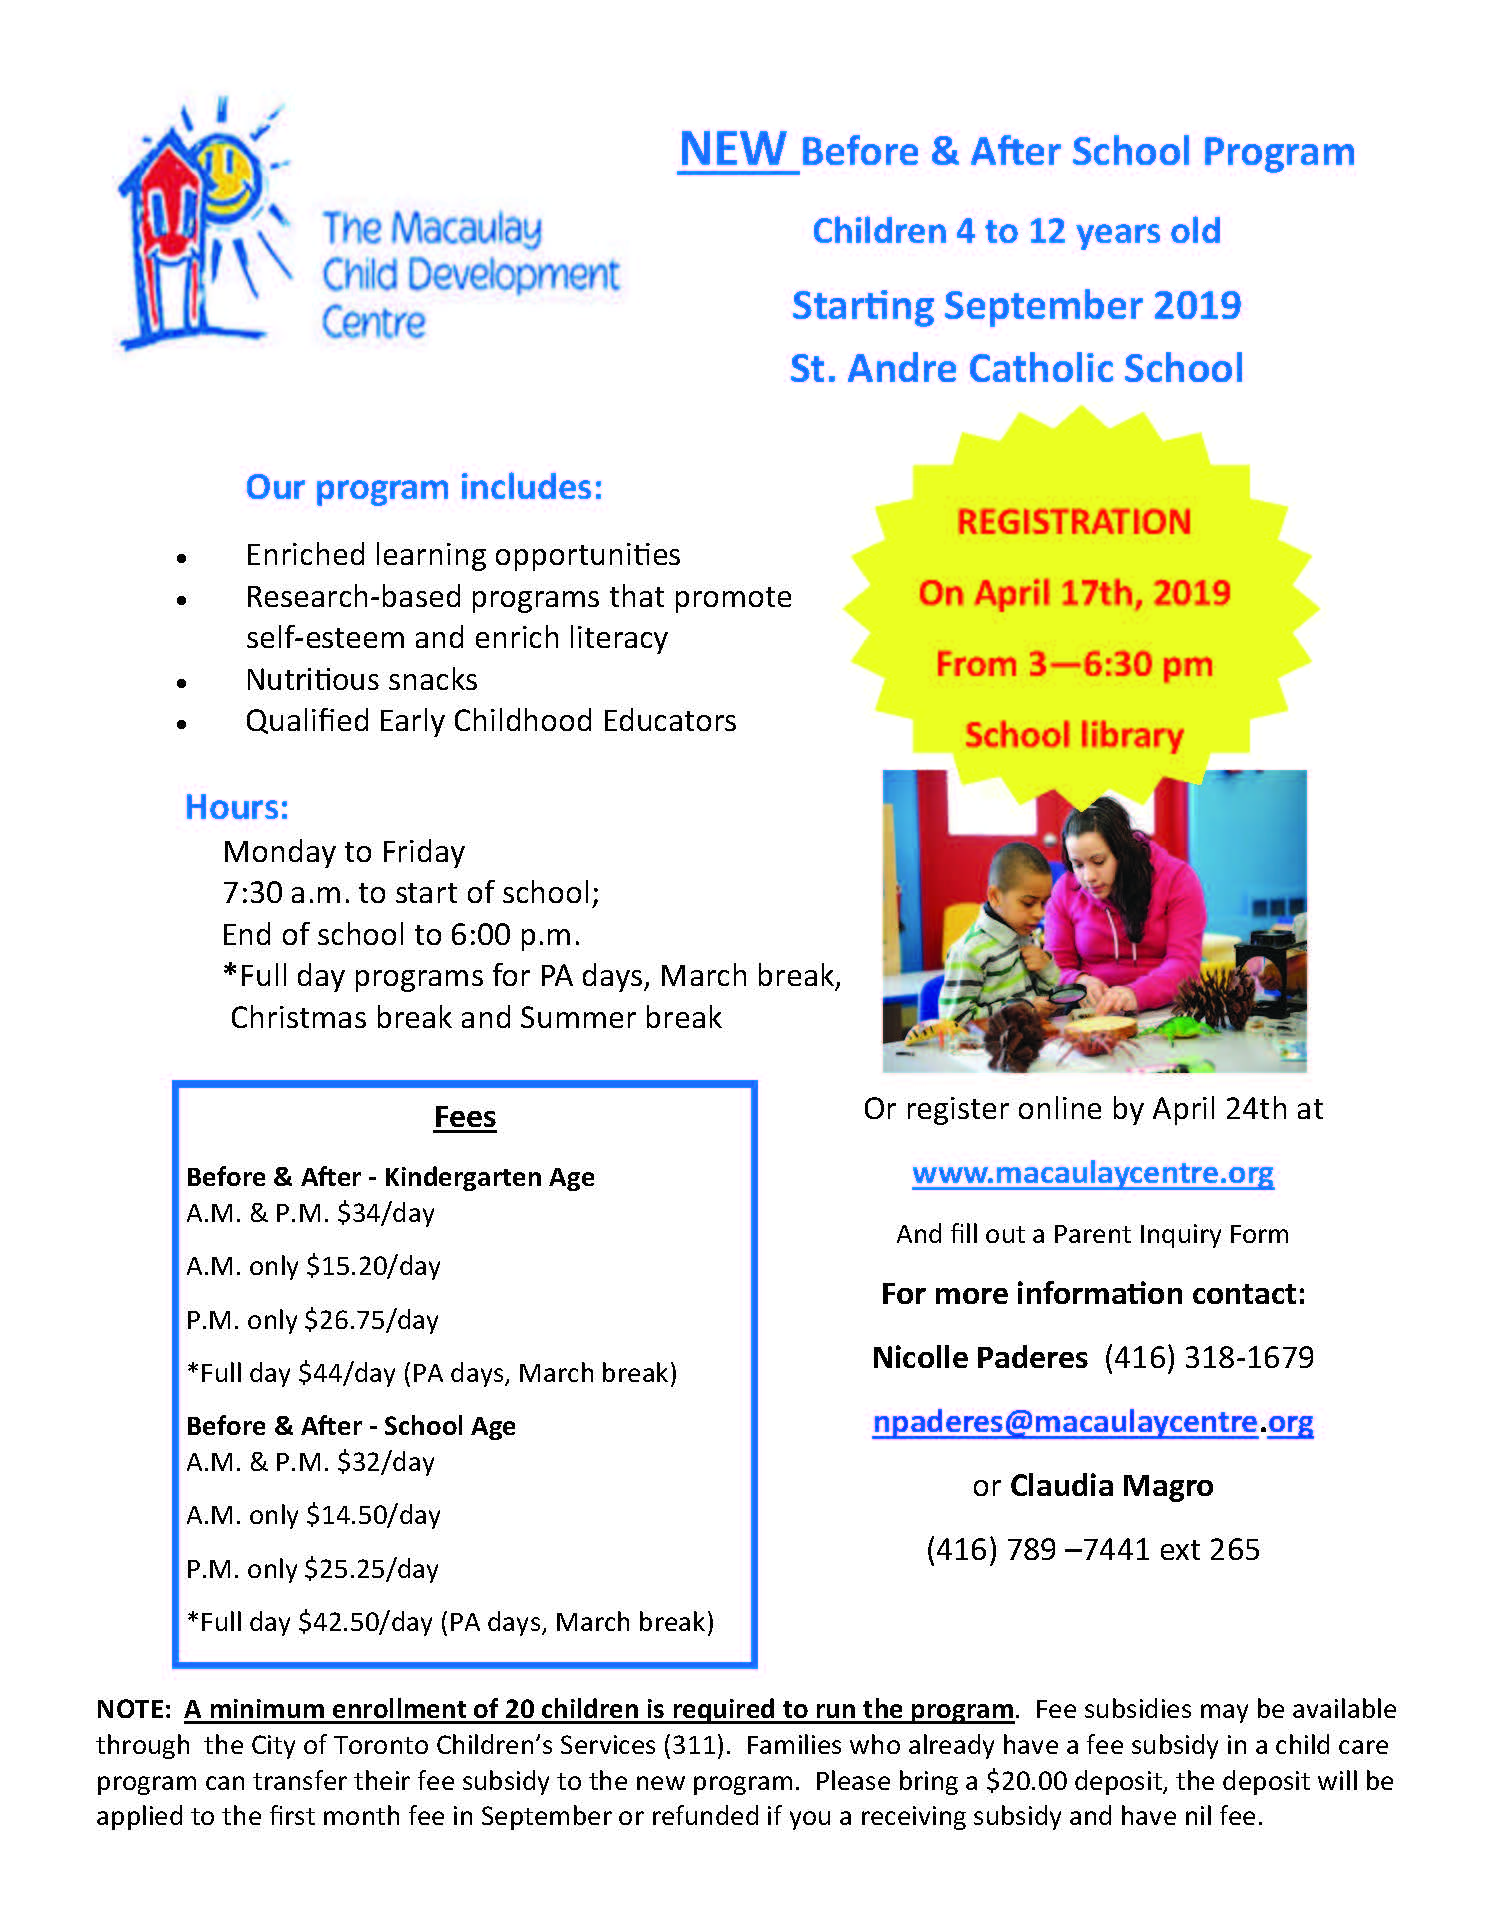 New Before and After Program Registration at St. Andre Catholic School